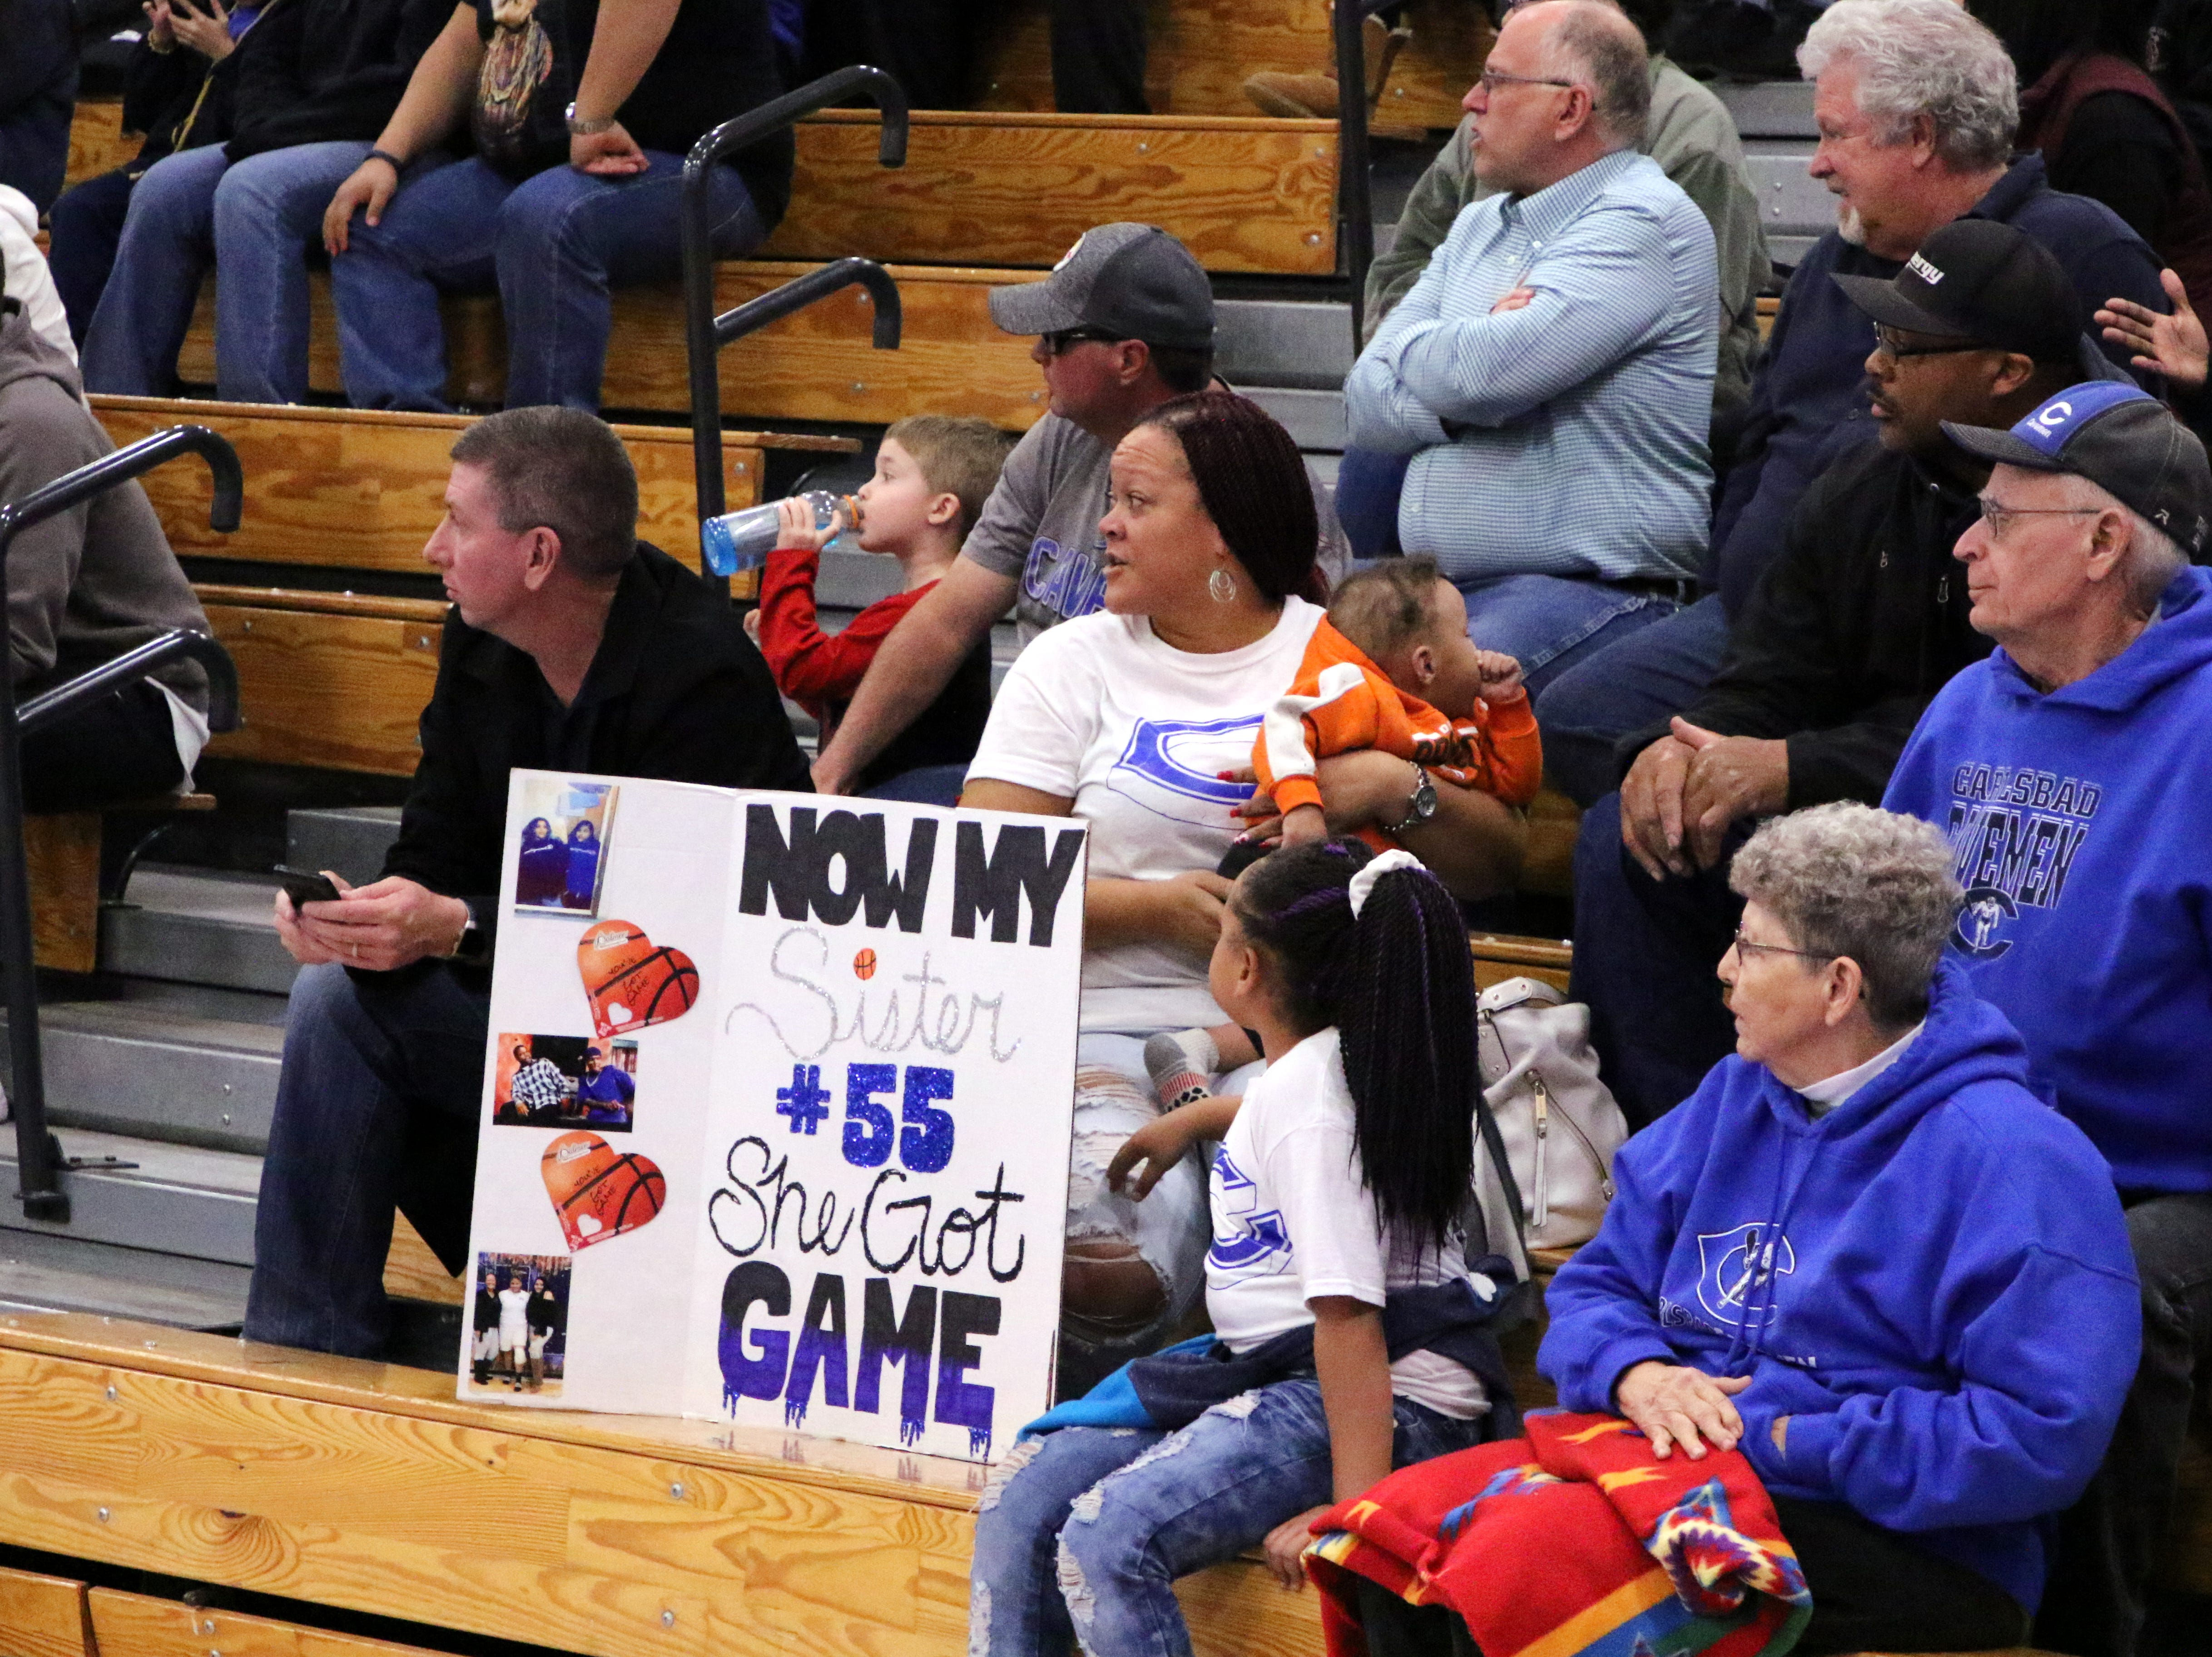 Kaliyah Montoya's family brought their sign to Friday's game. Montoya led all scorers with 17 points.